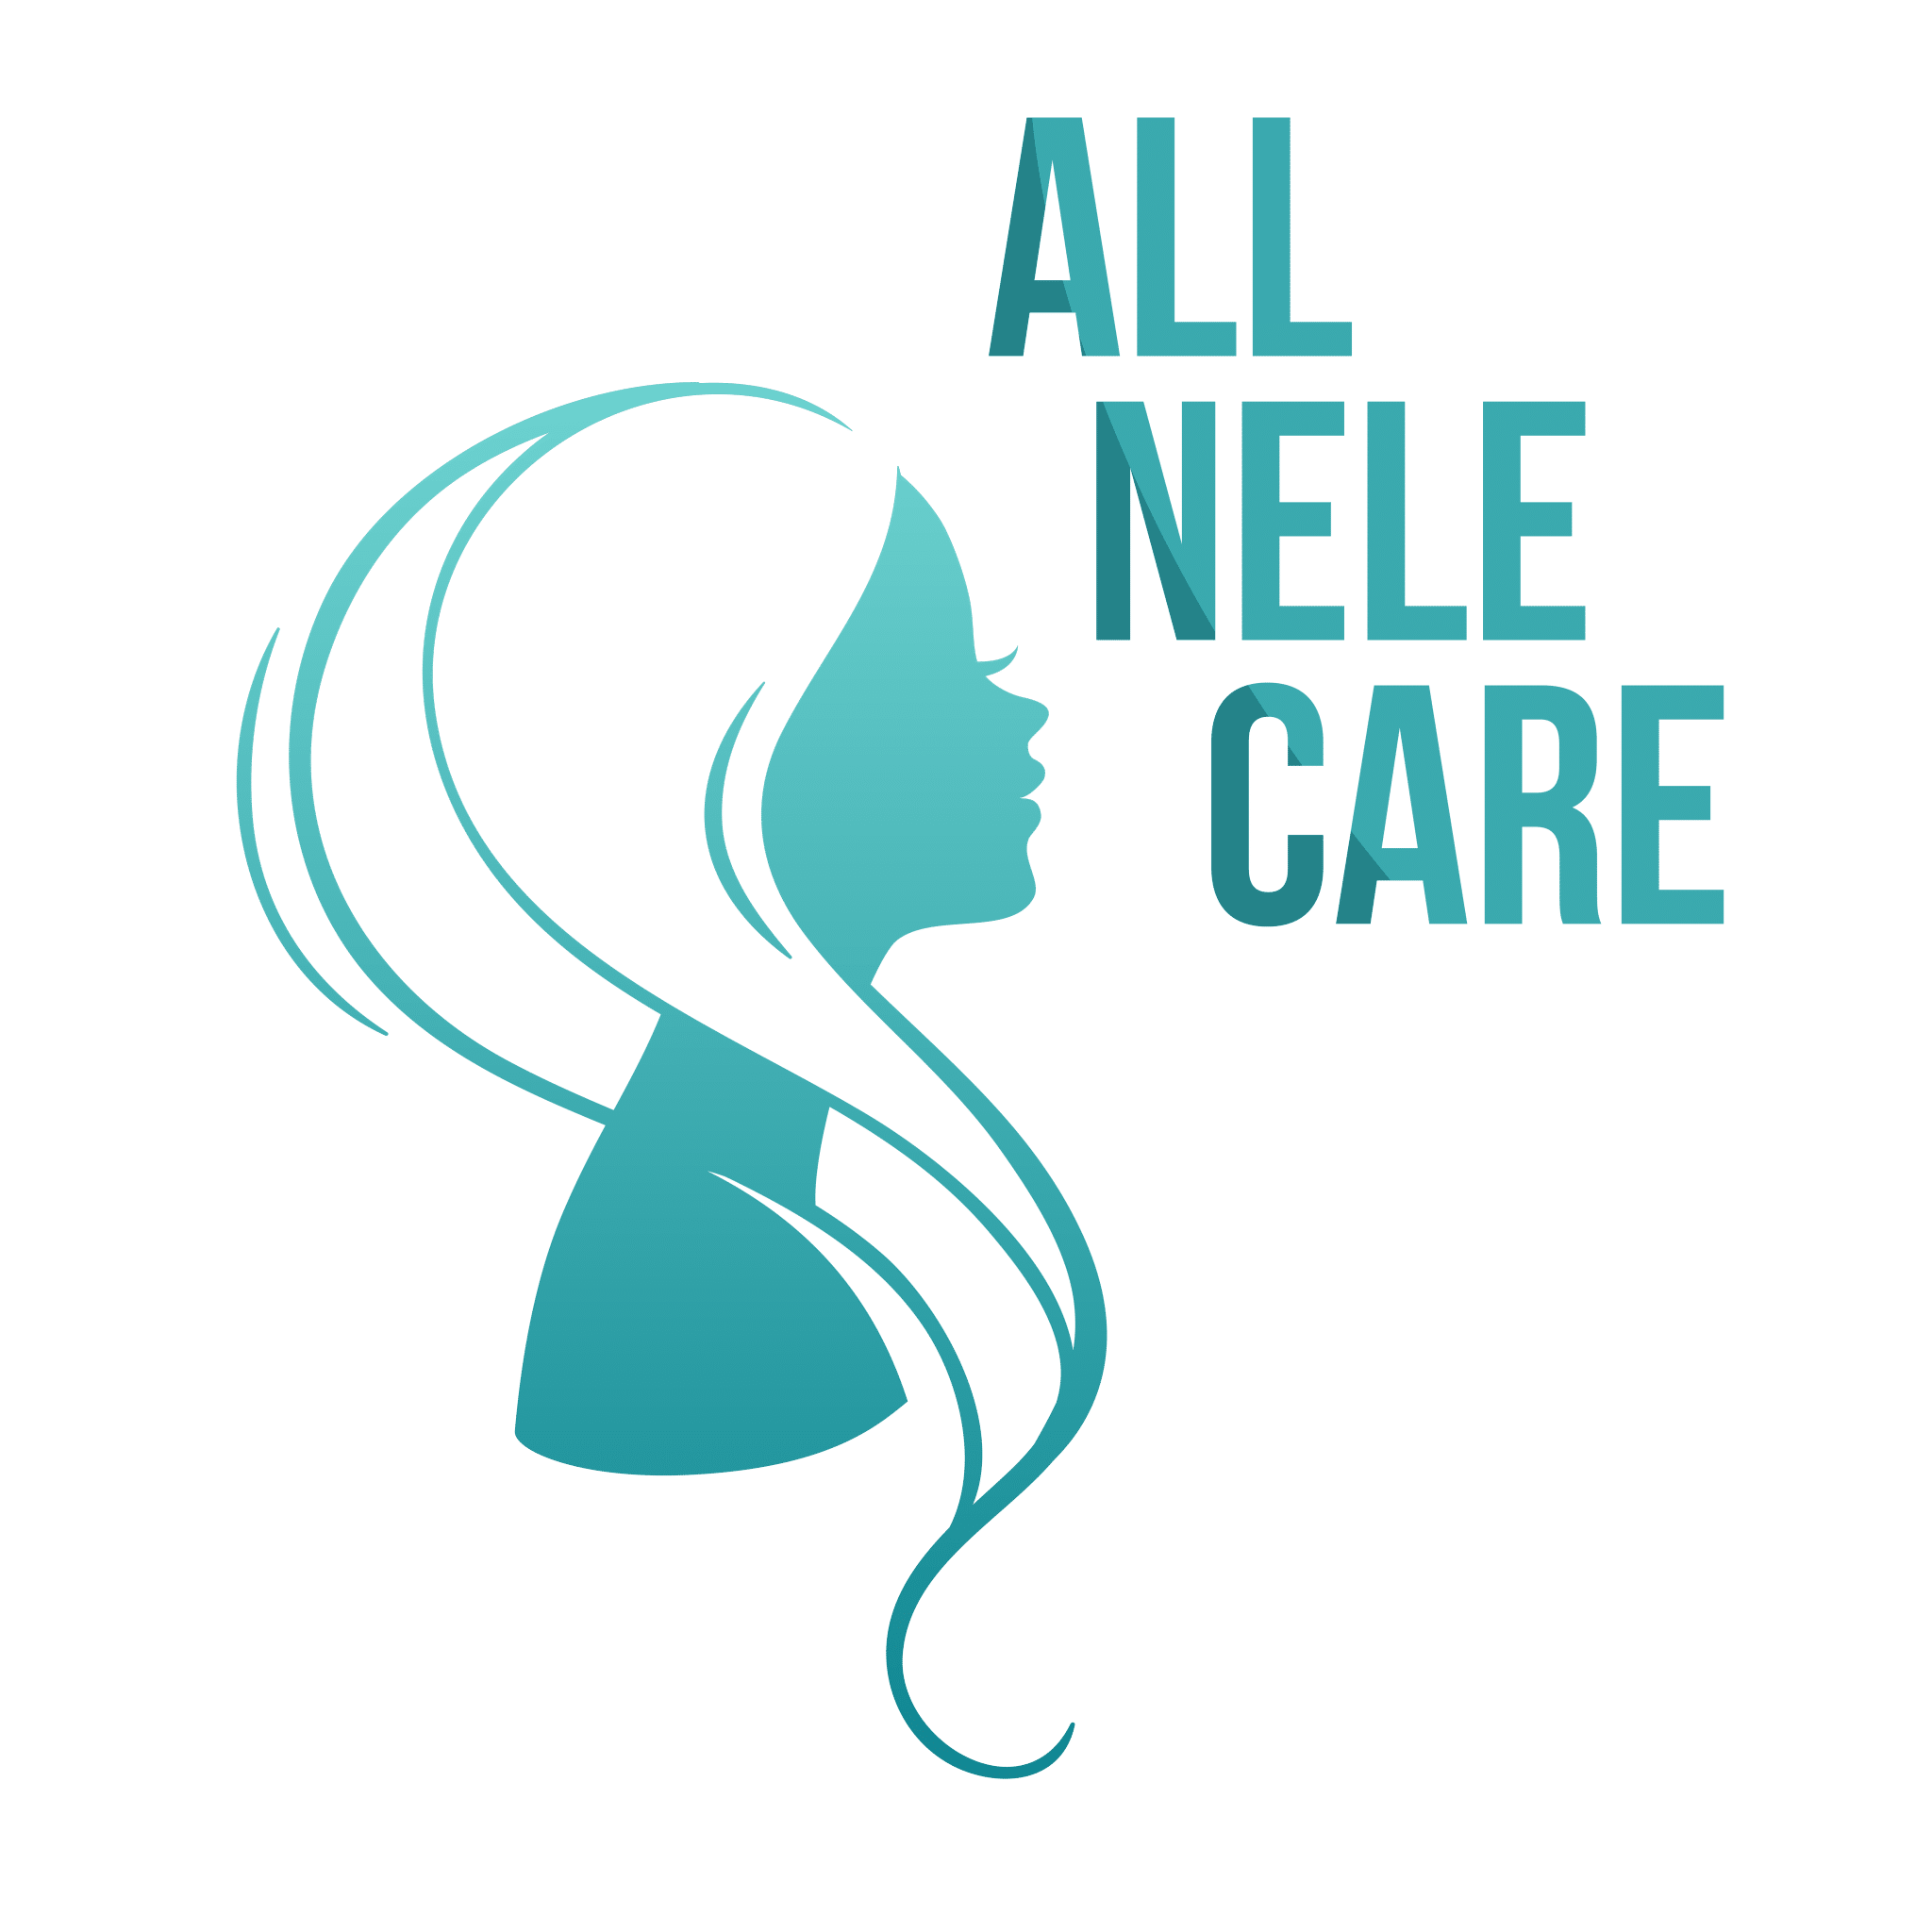 All Nele Care - Media44 - Nele Rottiers